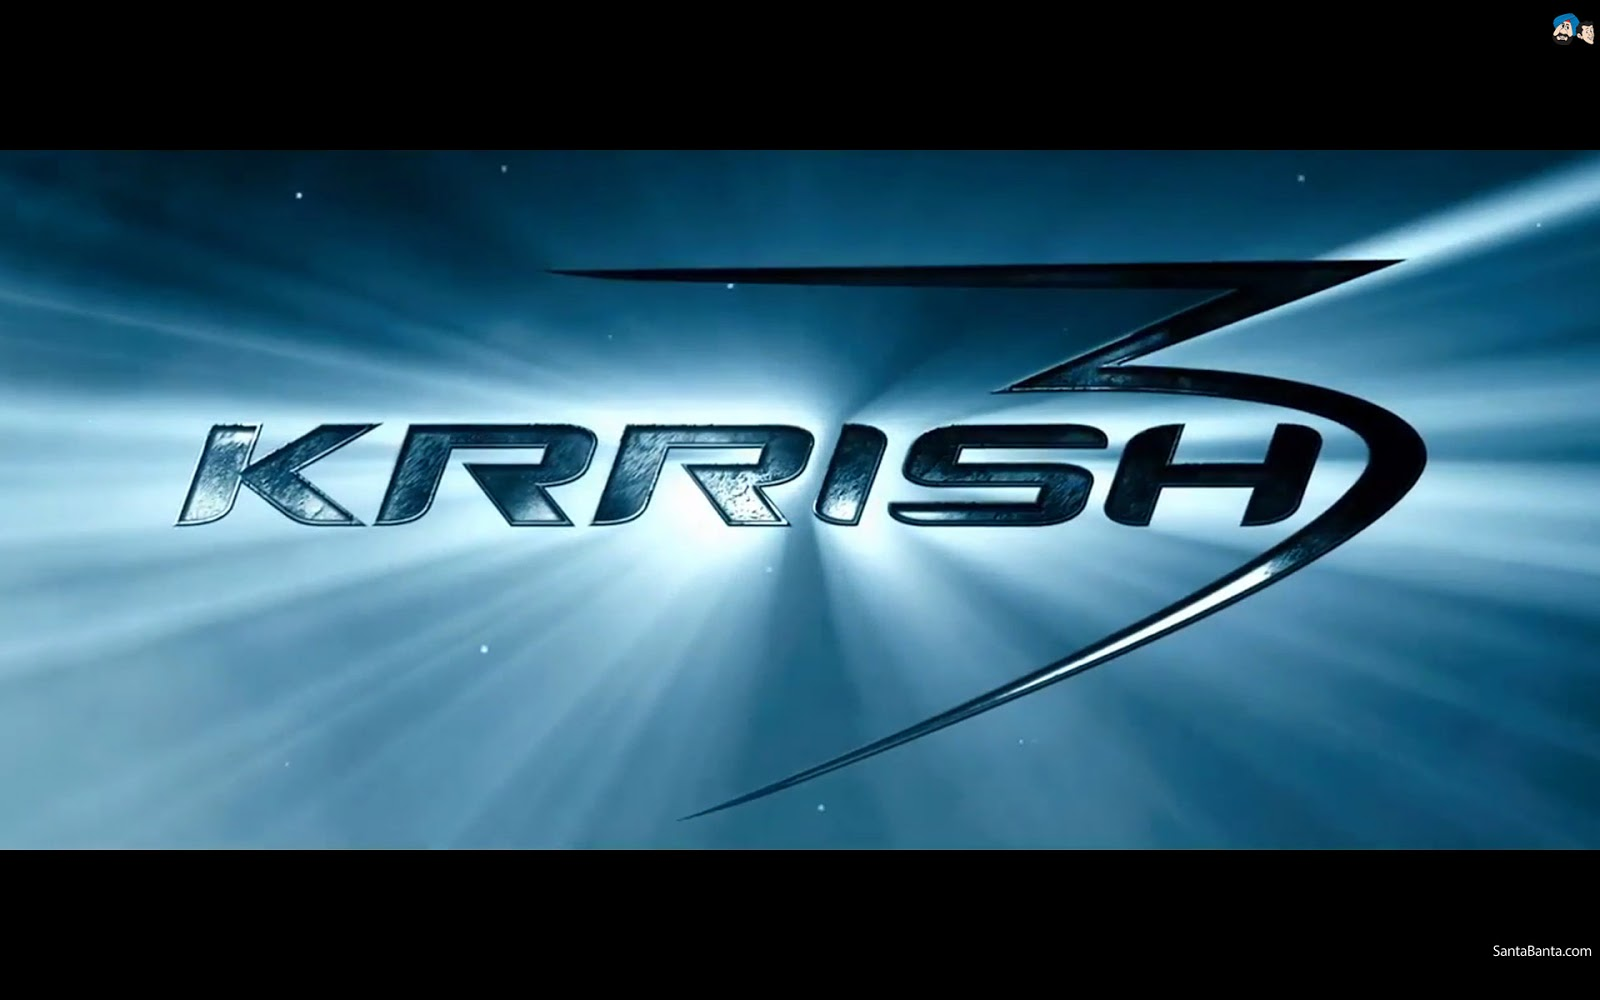 New HD Wallpapers Download For Free: Krrish 3 Hindi Action Movie HD Desktop Wallpapers Download Free